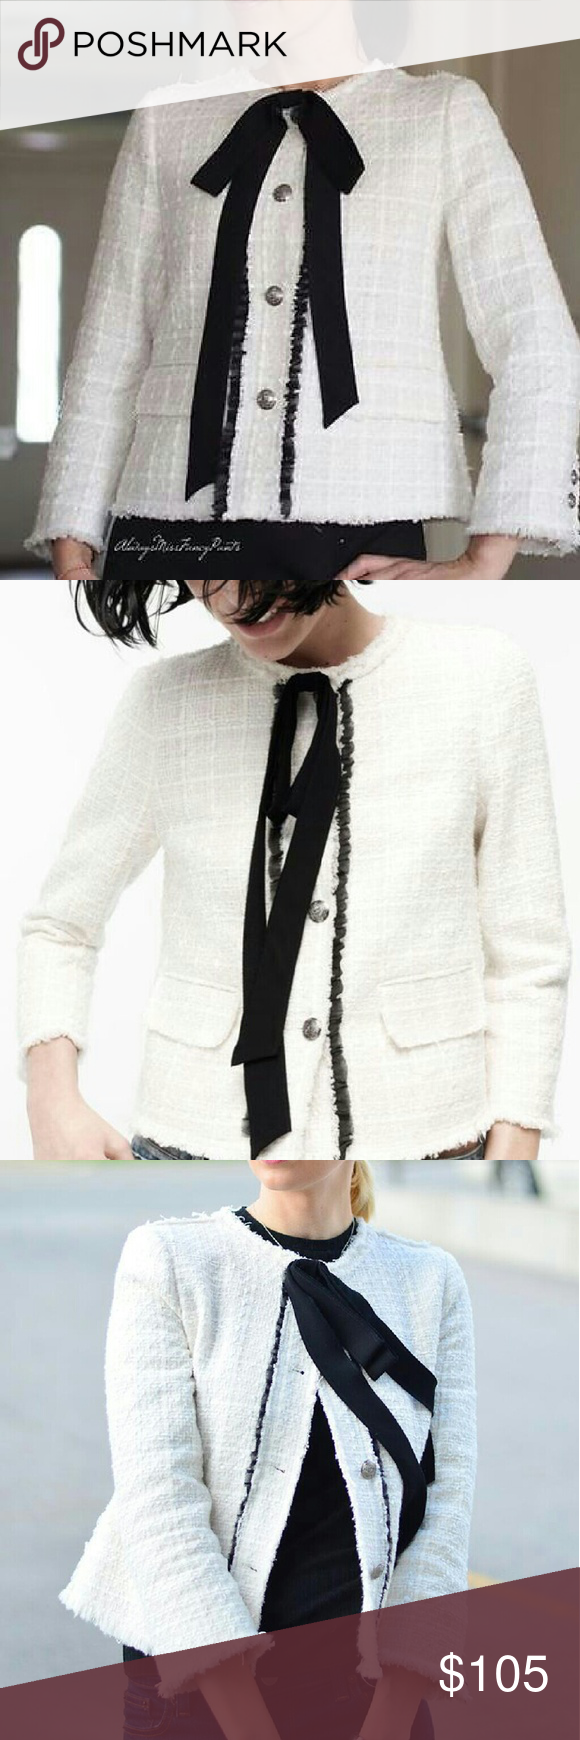 2d4294a2 Lady tweed jacket with bow Chanel look round neck jacket with black bow....outershell  40% cotton, 30% acrylic, 27% polyester, and 3% viscose...lining 95% ...